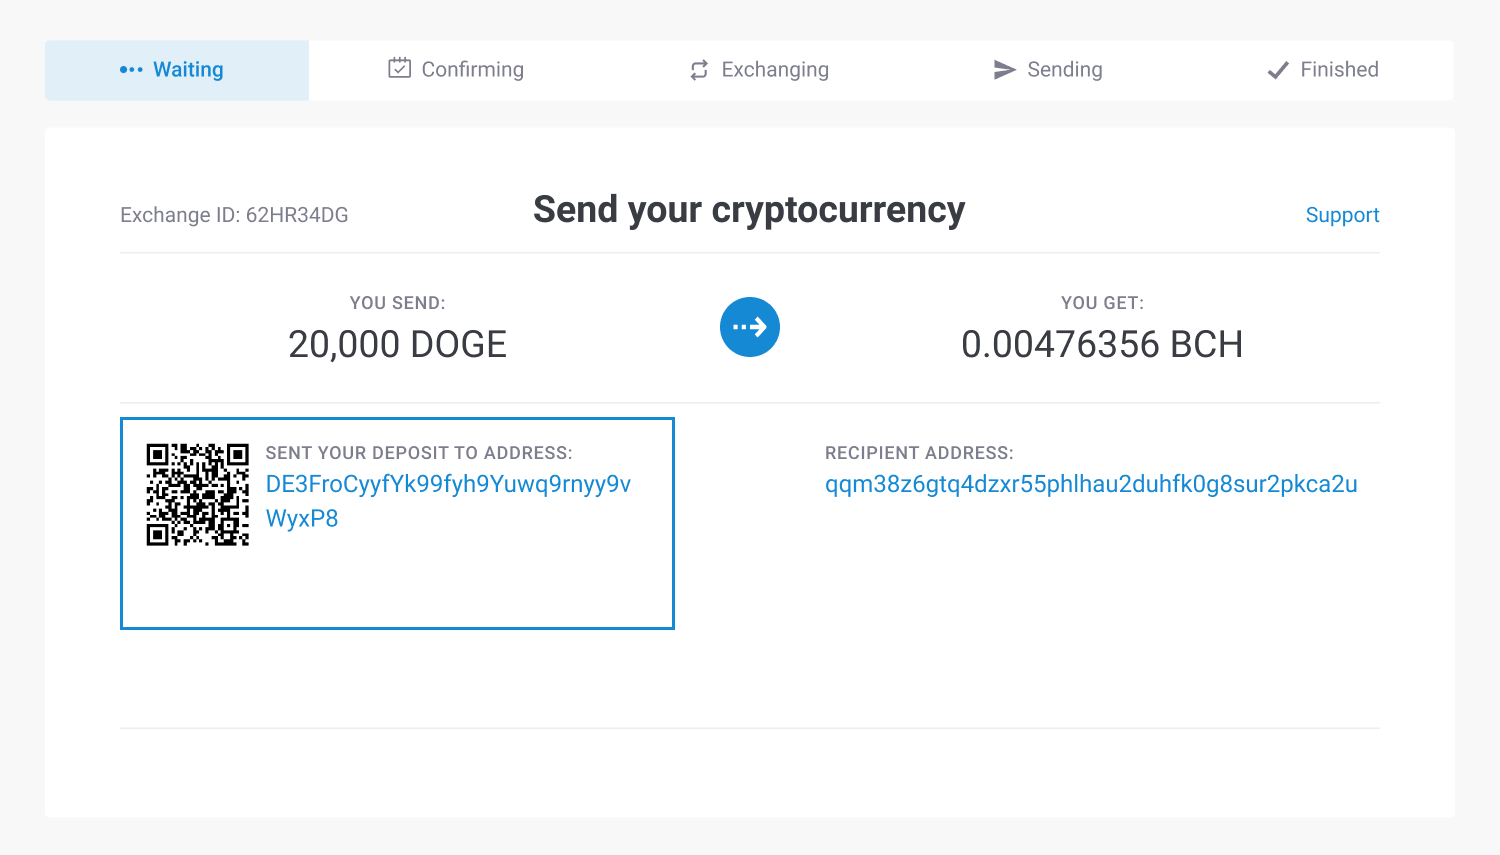 the address to send Dogecoin